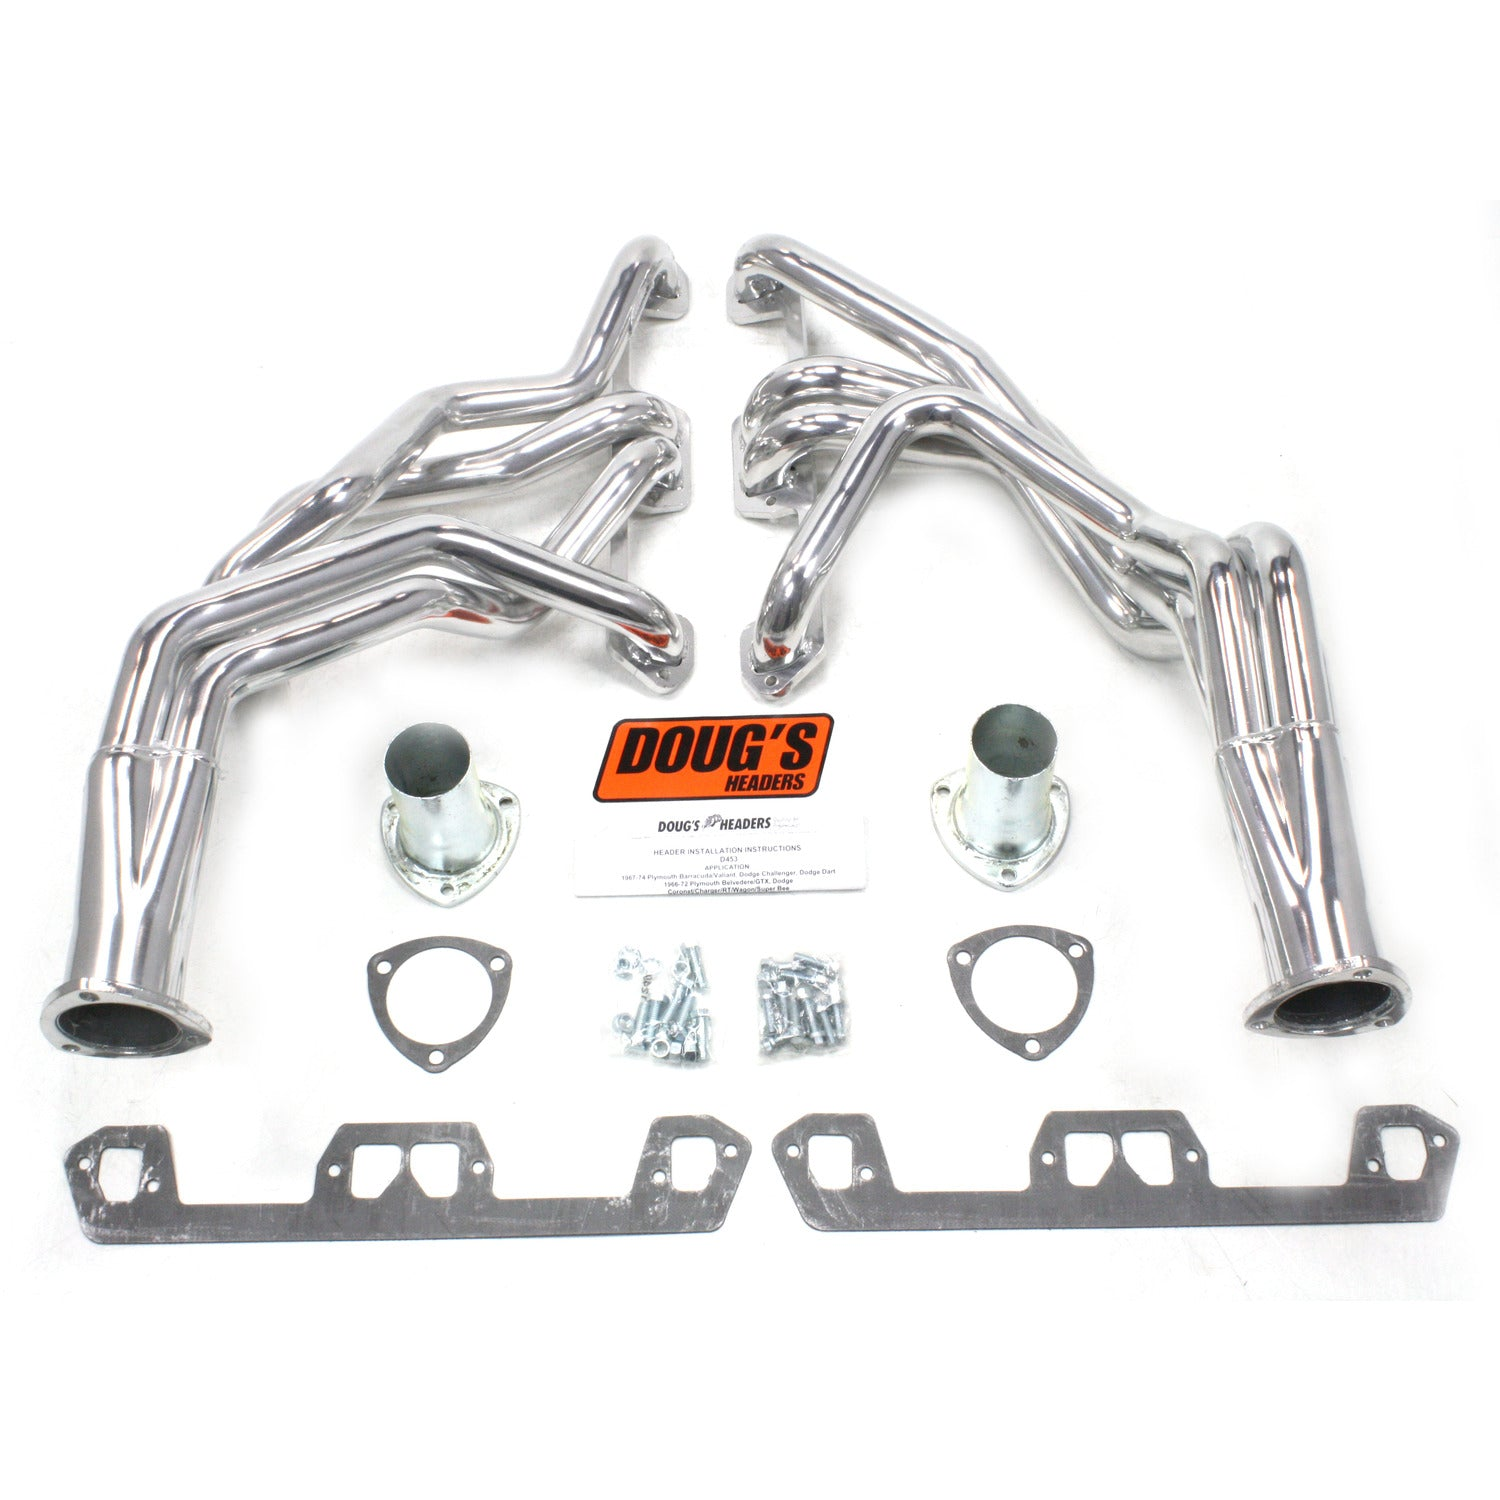 "Doug's Headers D453 1 5/8"" 4-Tube Full Length Header Mopar A Body Small Block Mopar 67-72 Metallic Ceramic Coating"